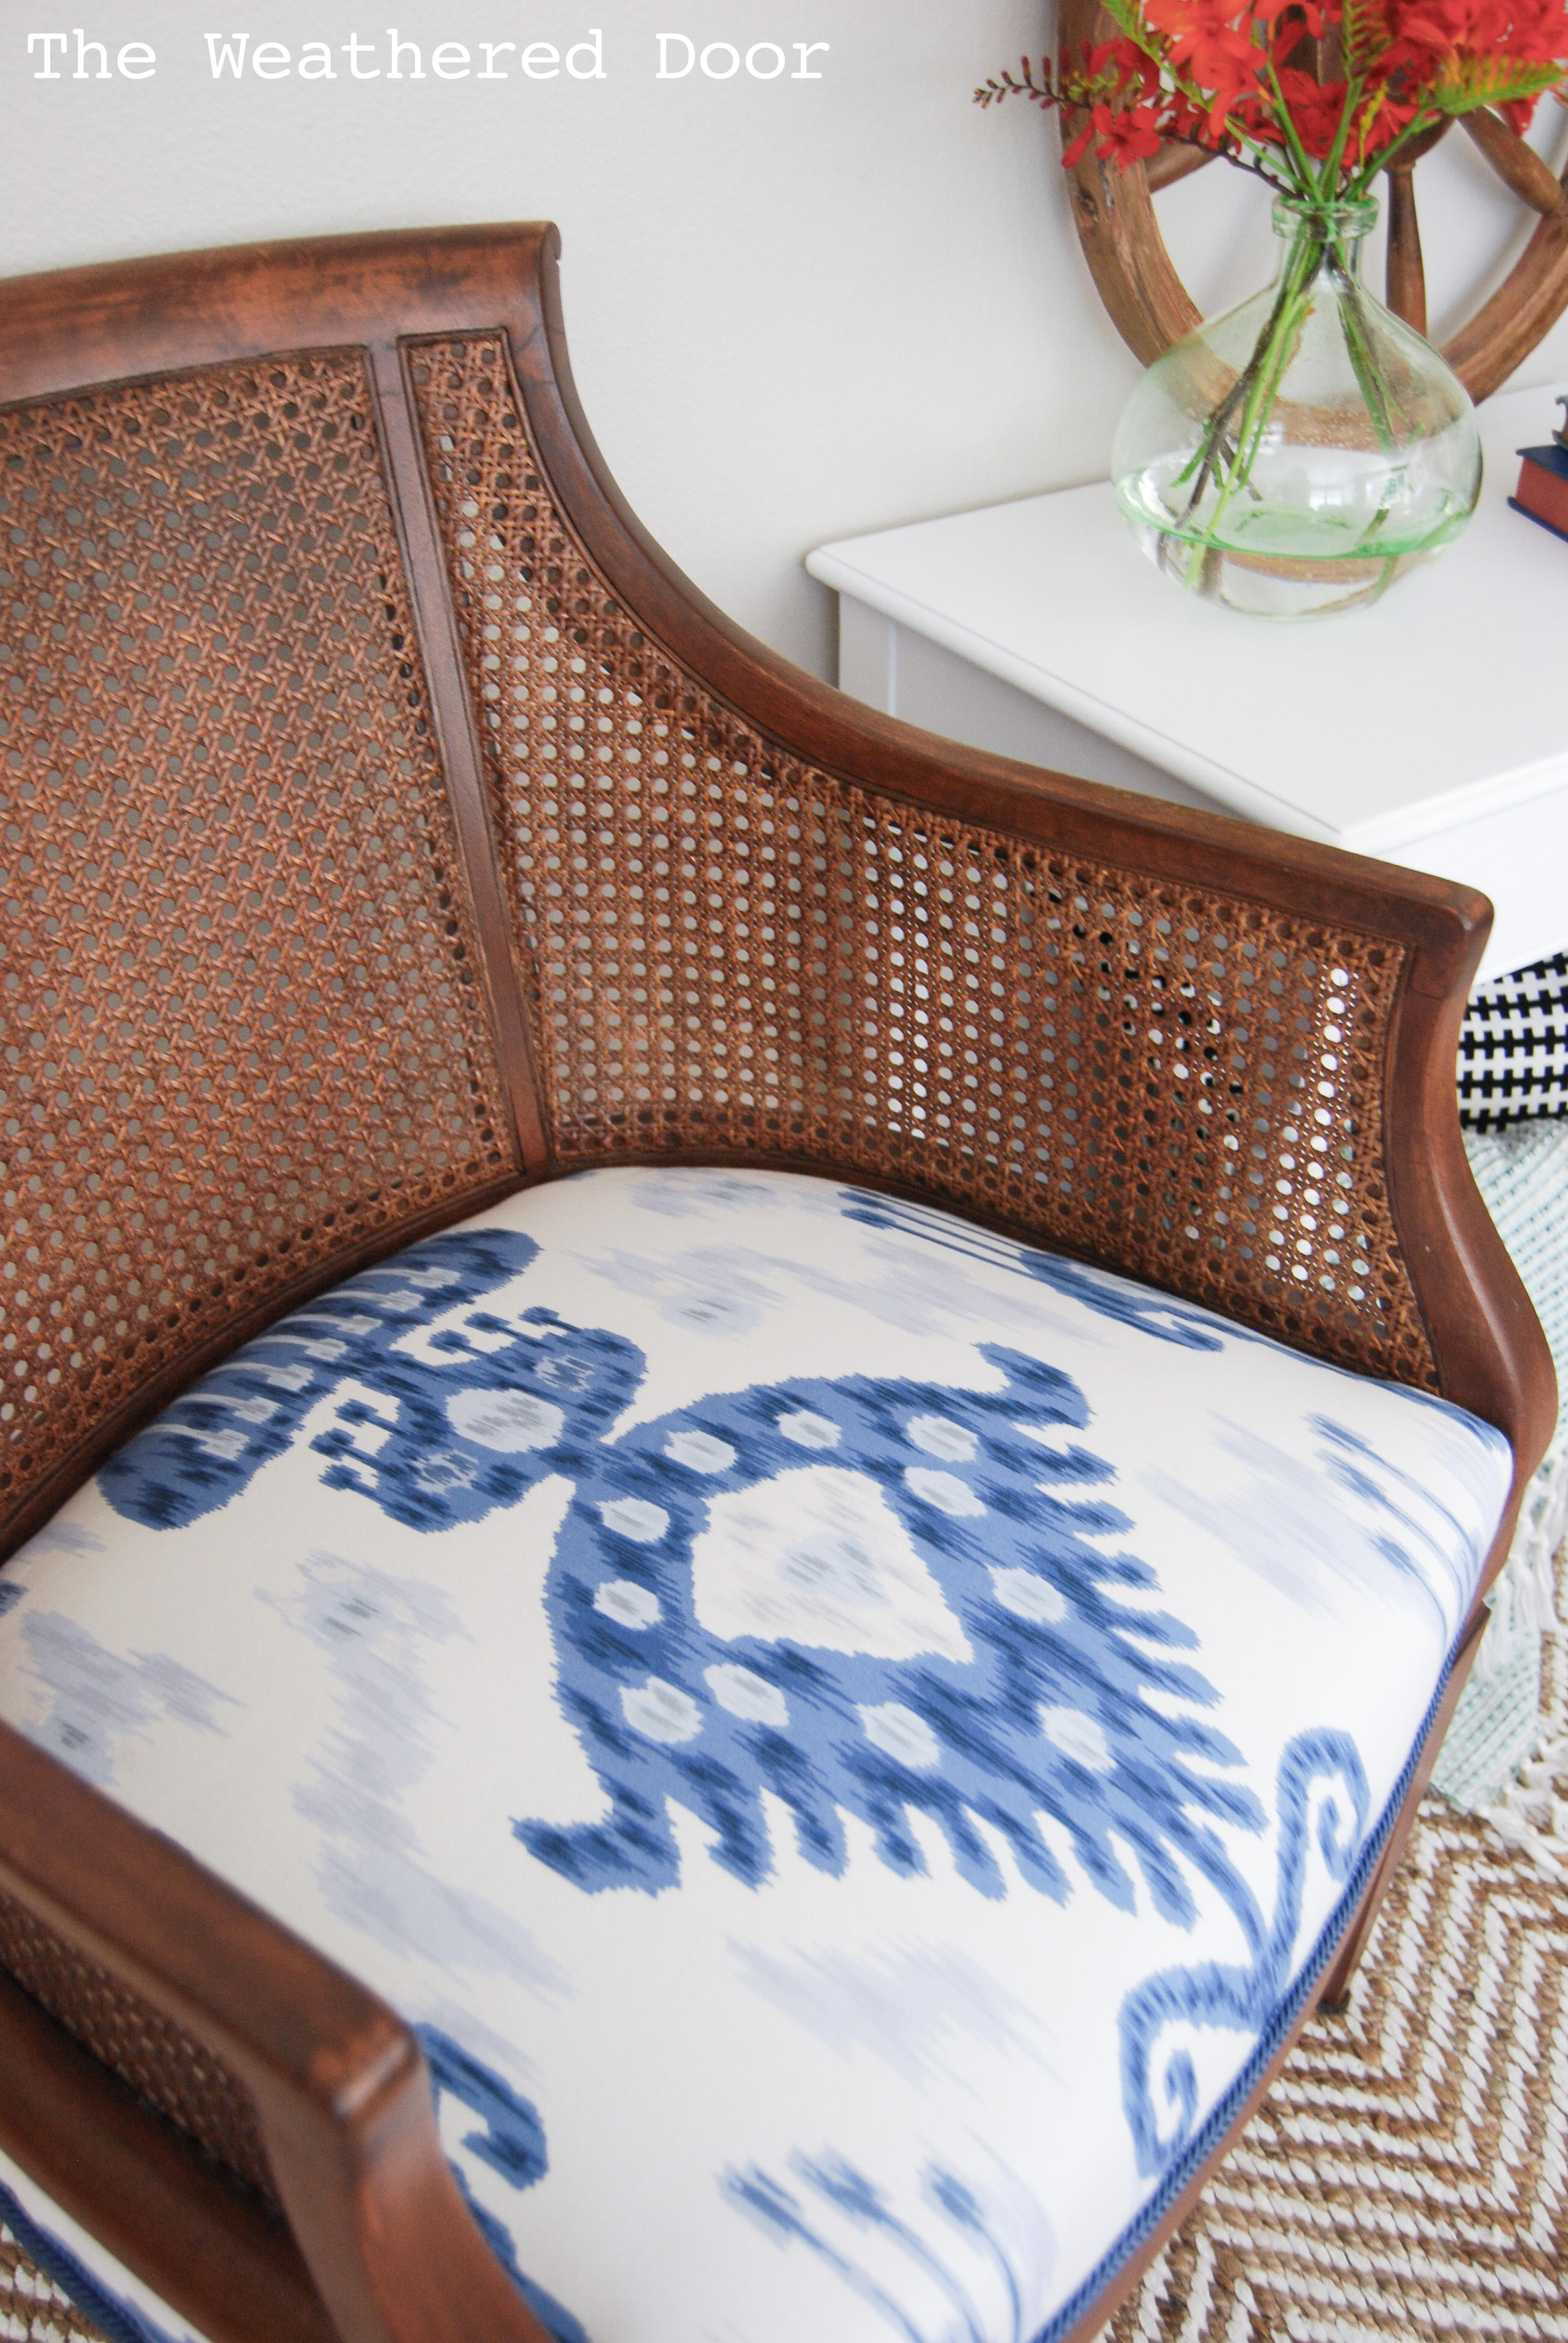 Cane Chair Makeover with Blue and White Ikat Fabric The